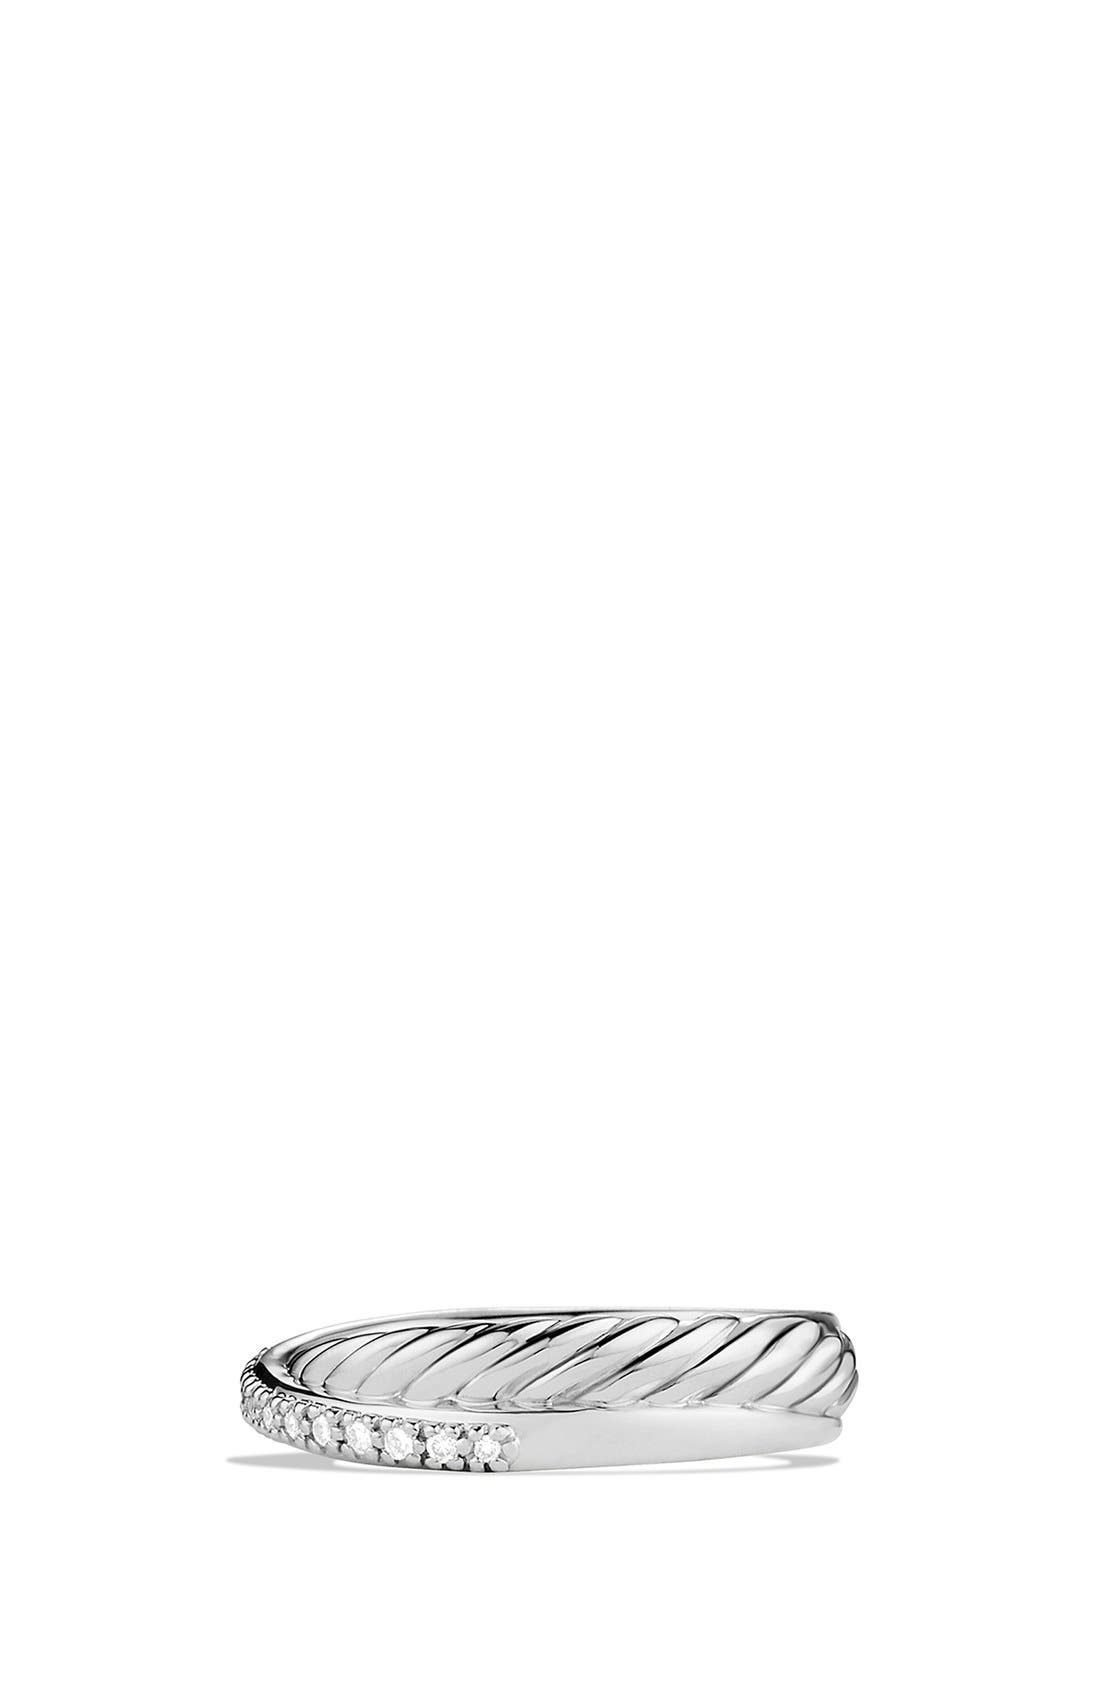 'Crossover' Ring with Diamonds,                             Alternate thumbnail 3, color,                             SILVER